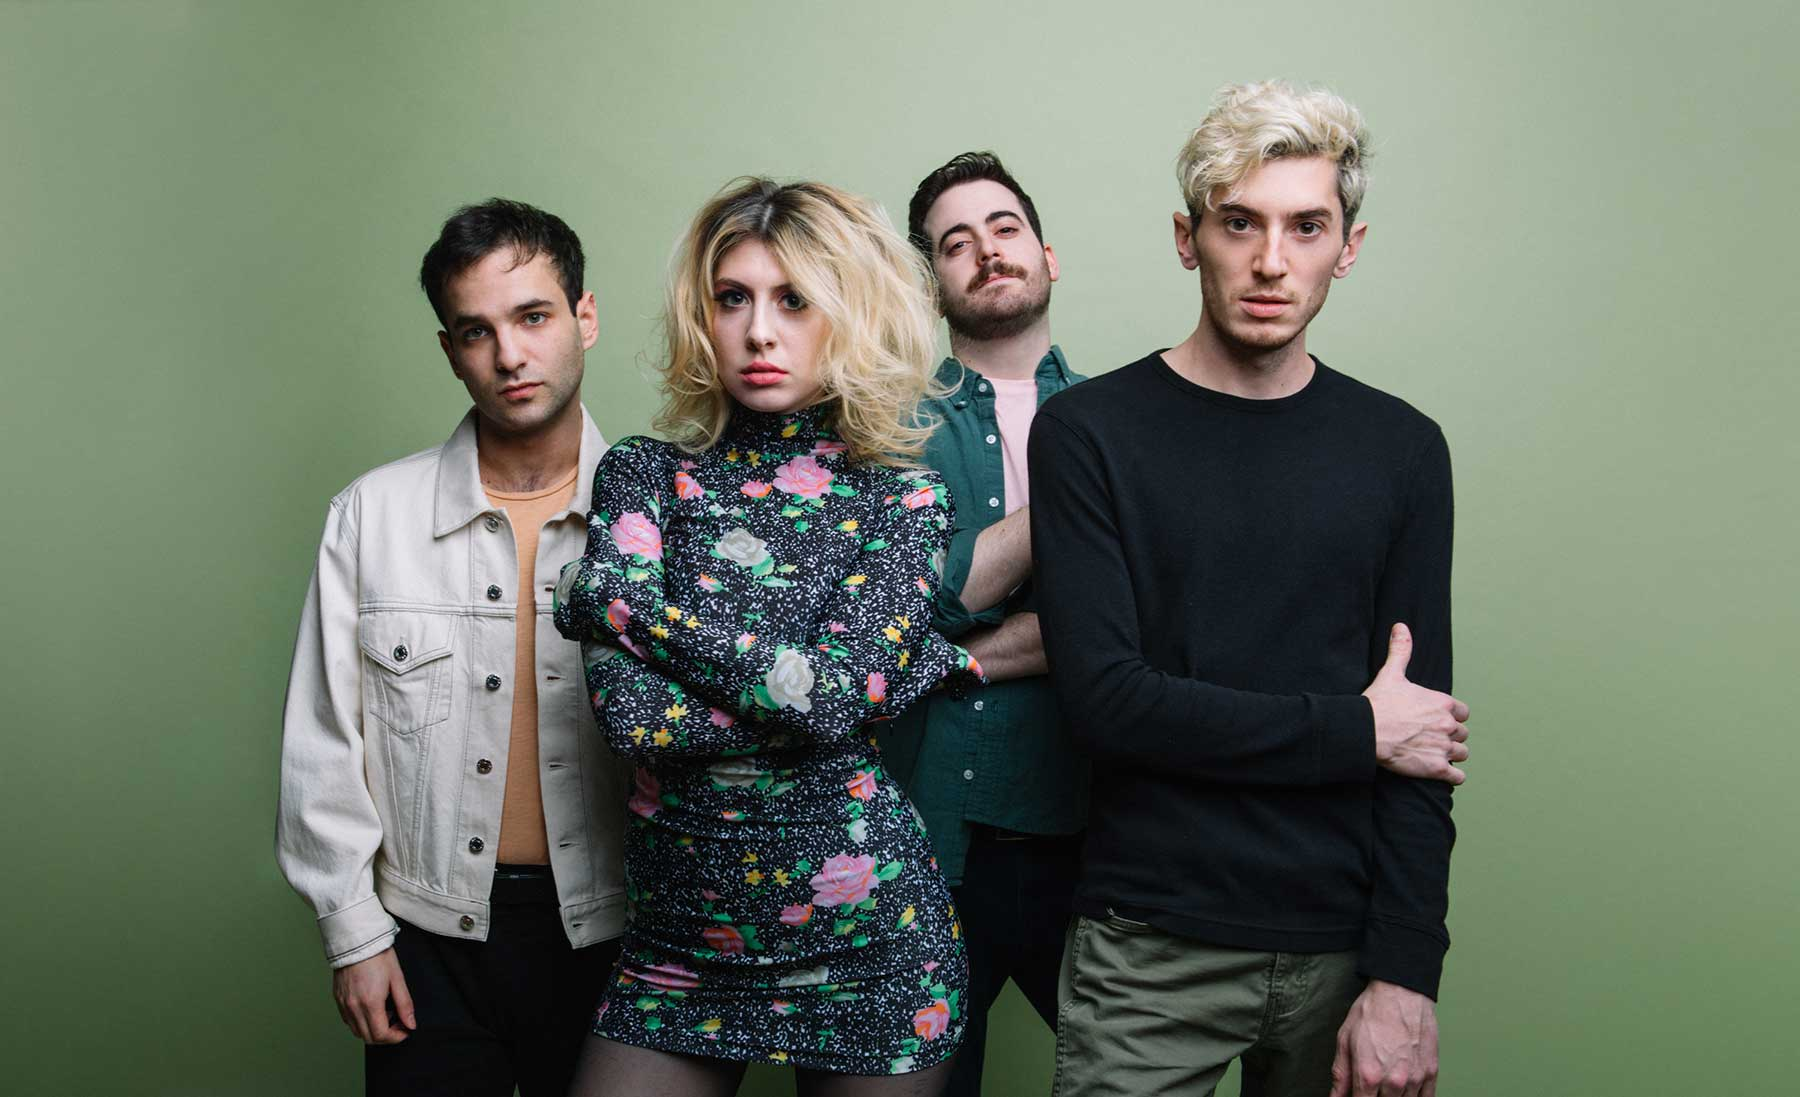 Musikvideo-Premiere: Charly Bliss - Chatroom Charly-Bliss-bandfoto